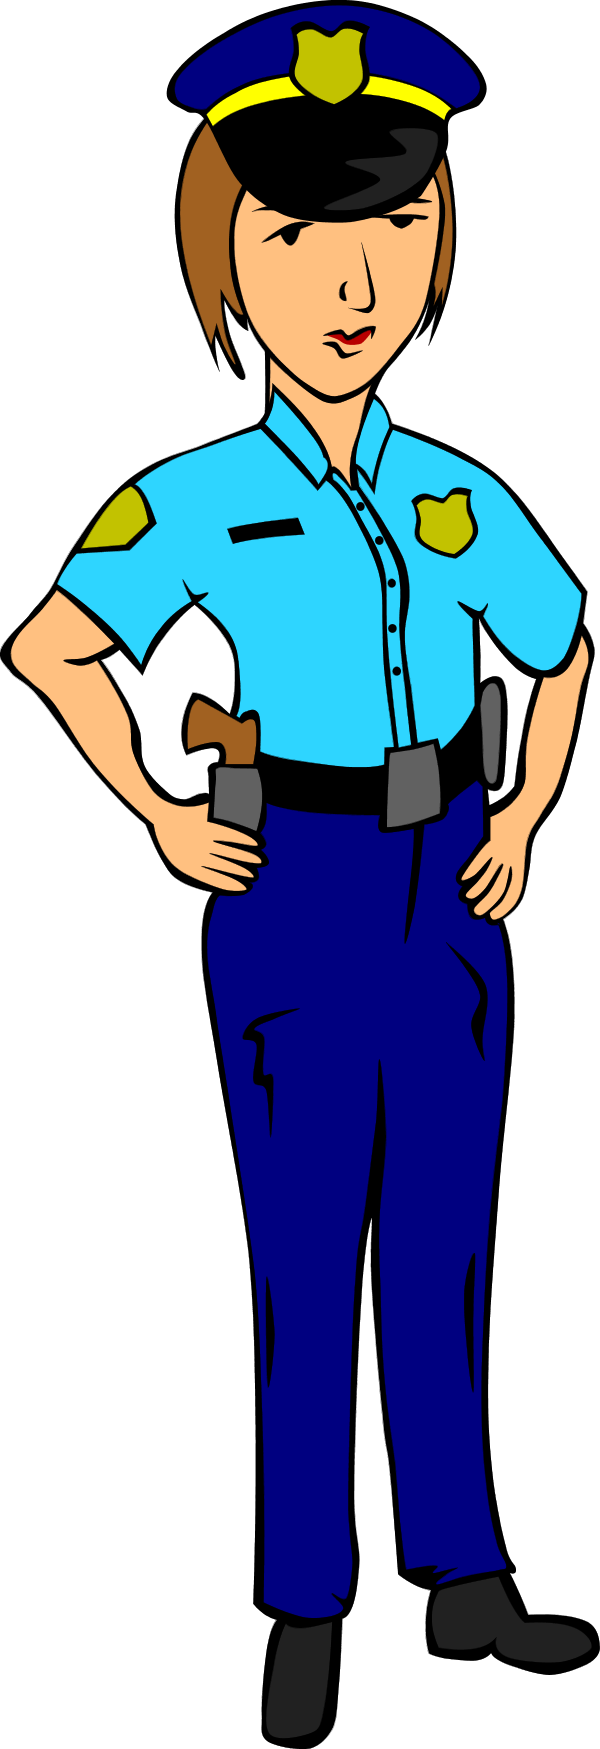 Female police officer panda. Handcuff clipart policeman